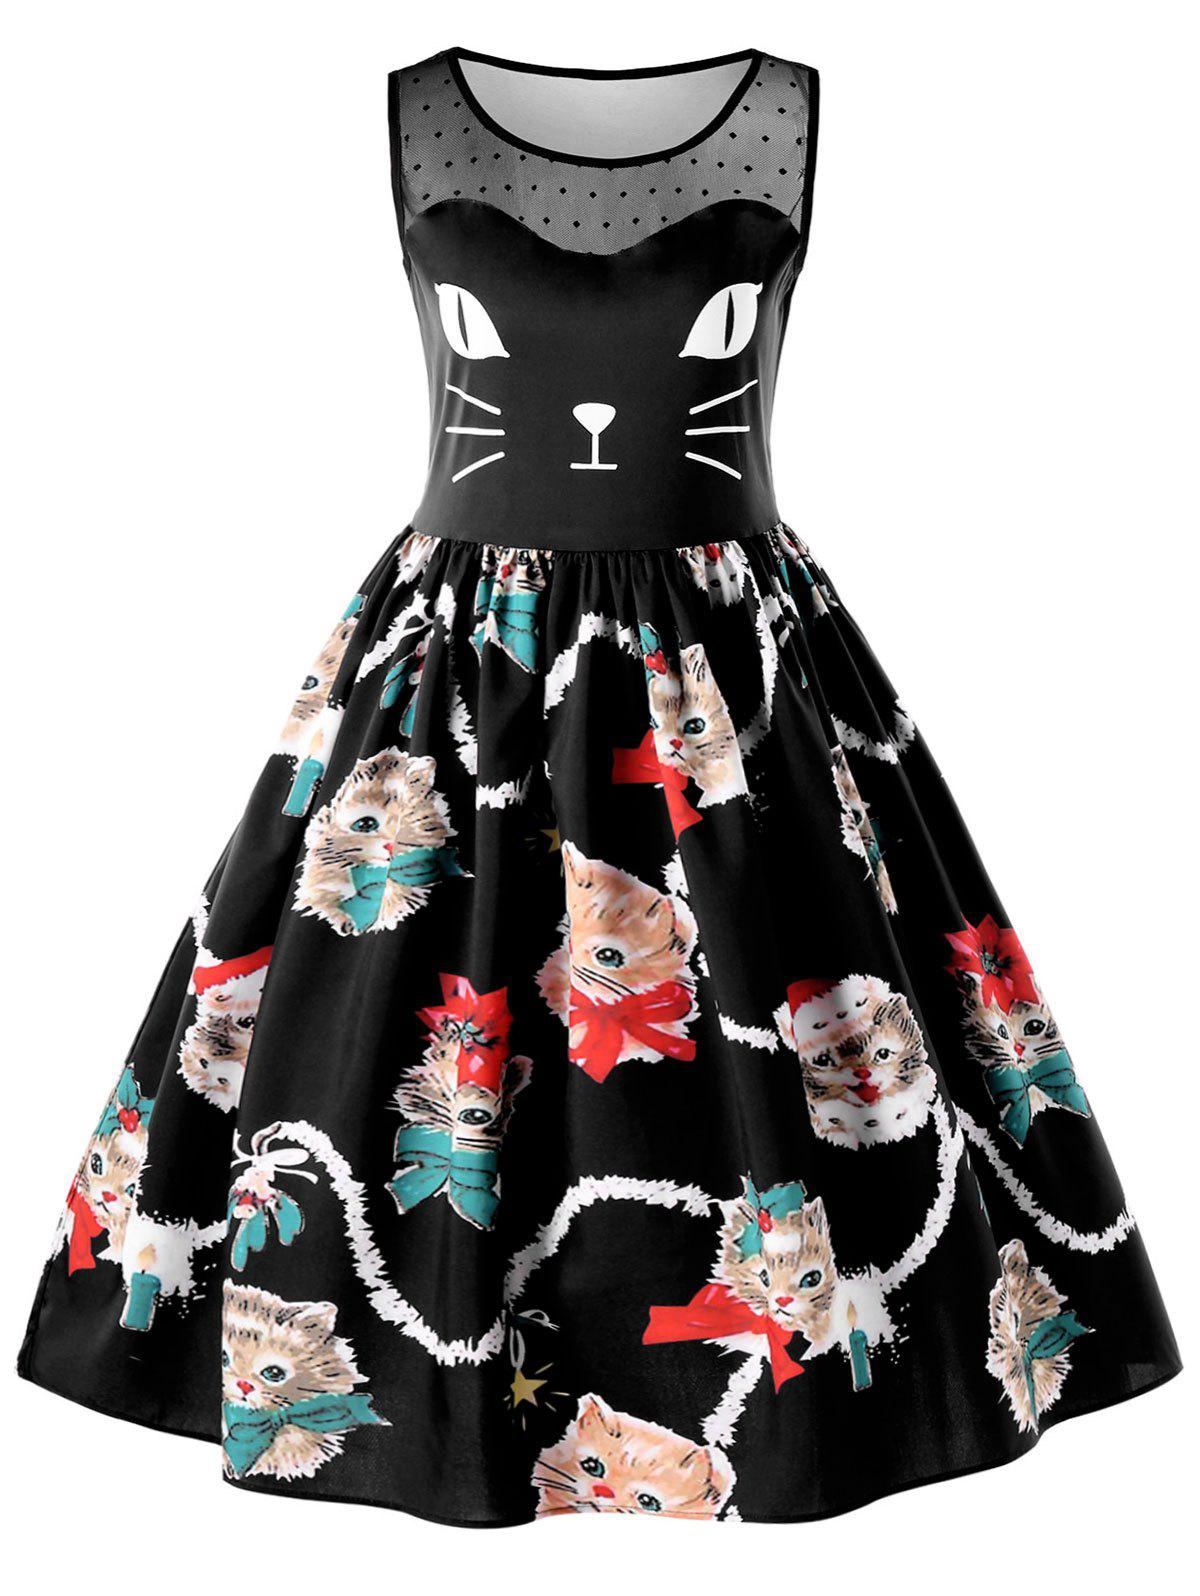 Kitten Print Sleeveless Fit and Flare Dress - BLACK L